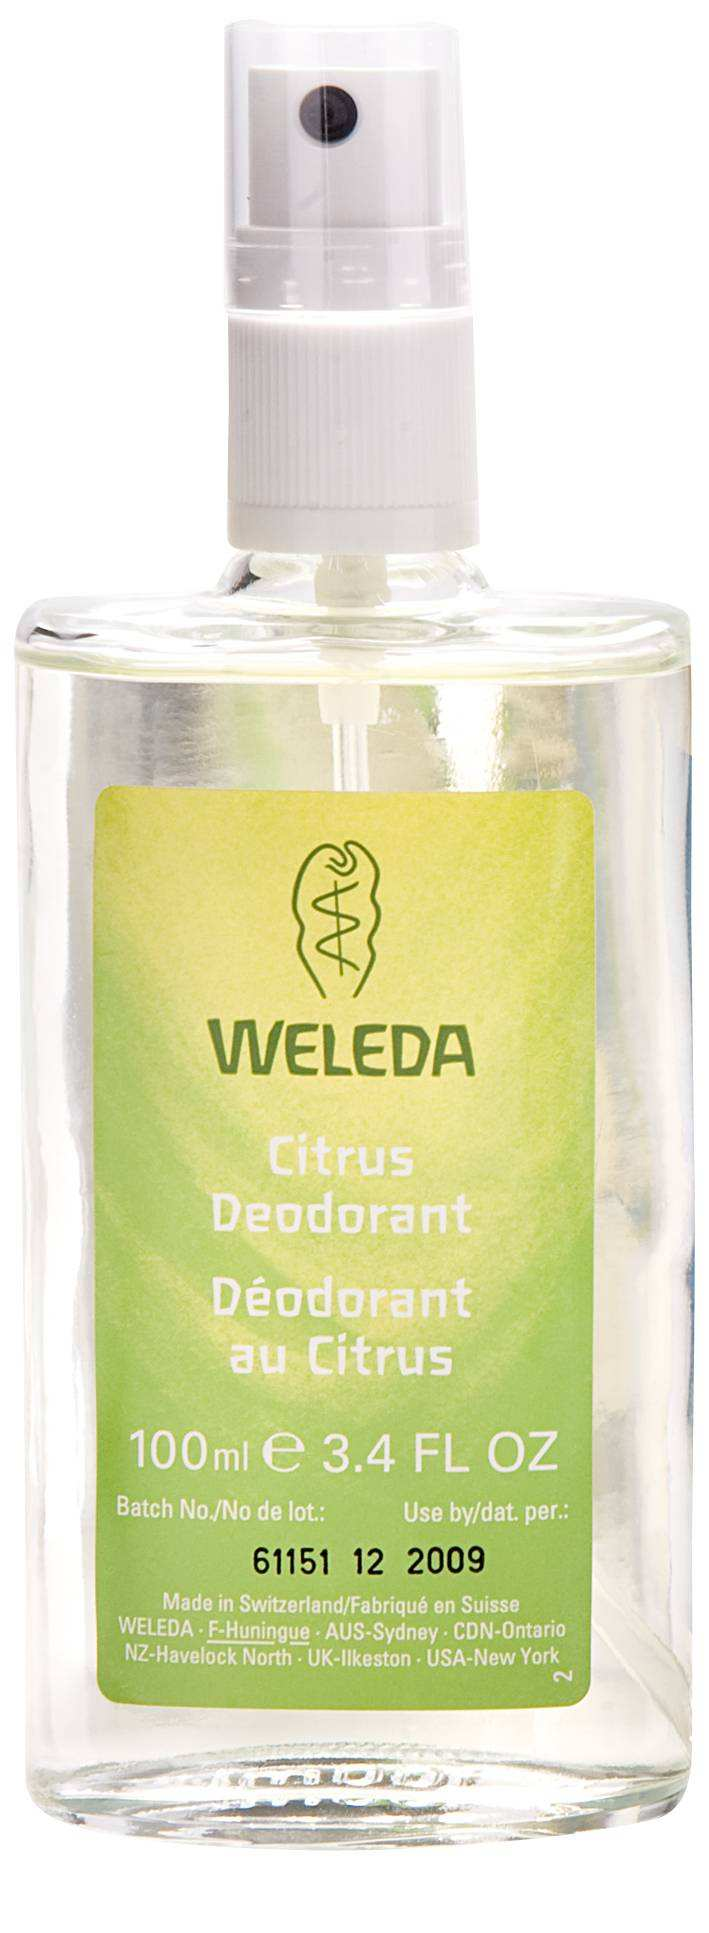 Buy Weleda Citrus Deodorant line 100ml